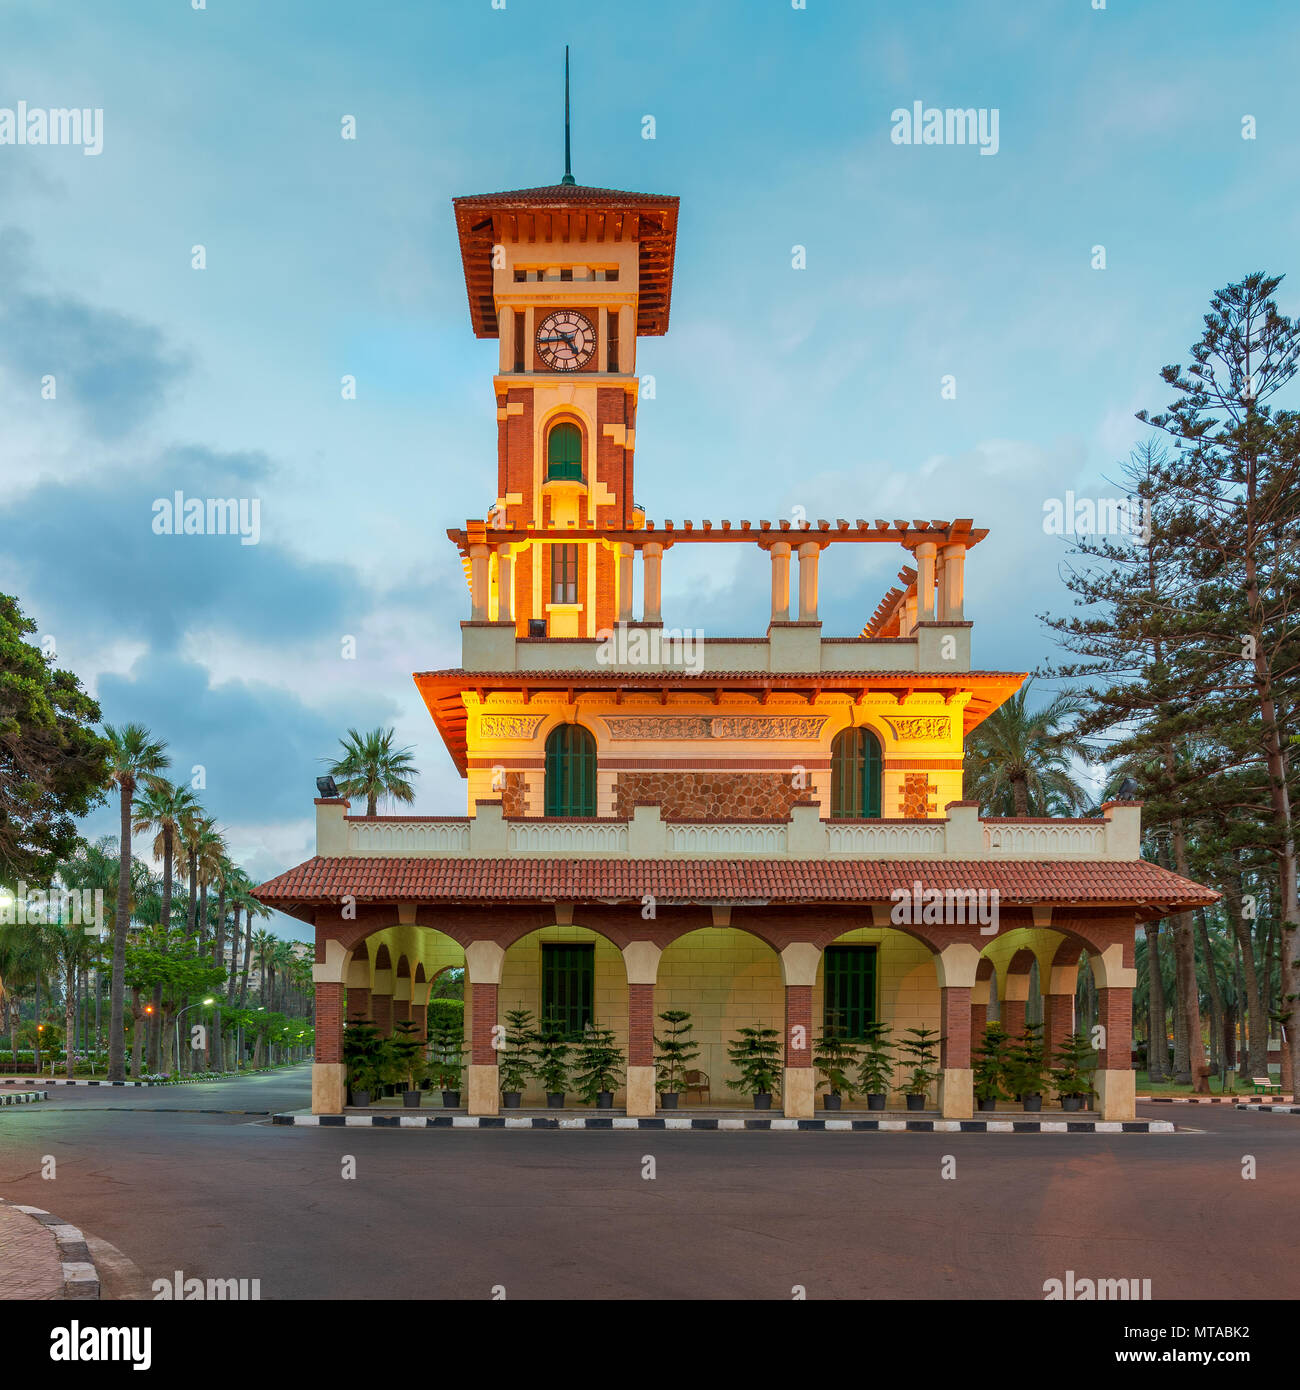 Facade of the clock tower in Montaza public park with decorated stone wall, green wooden window shutters, and red tile canopies at sunrise time, Monta - Stock Image